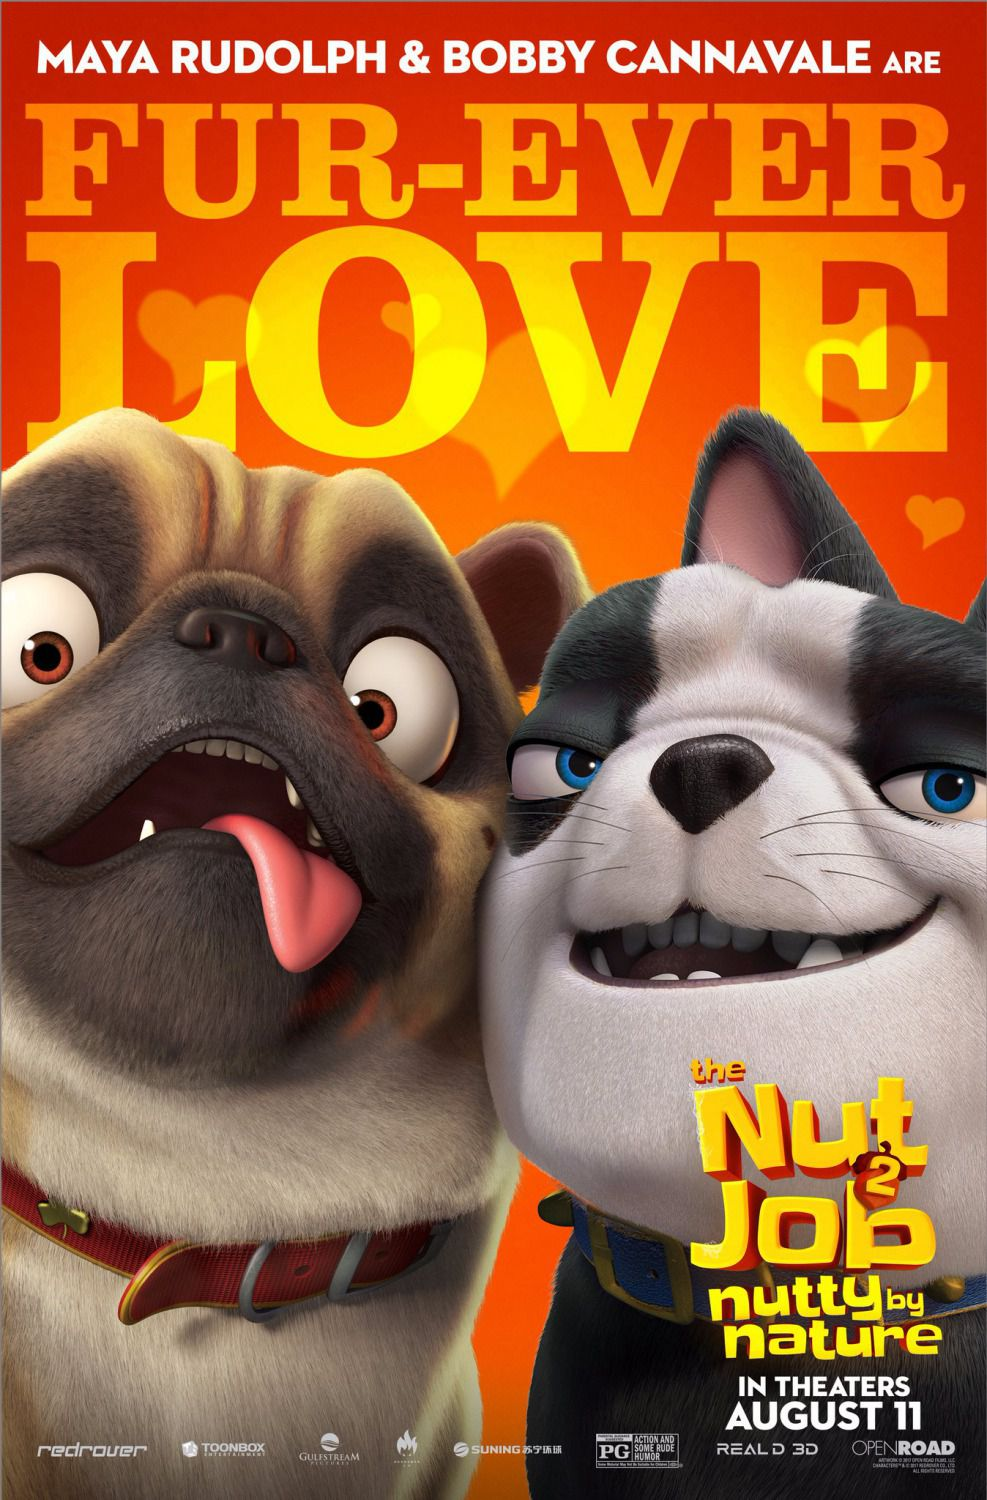 Film - The Nut Job 2 - Operazione Nocciolina 2 - Nutty by Nature - Fur-Ever Love